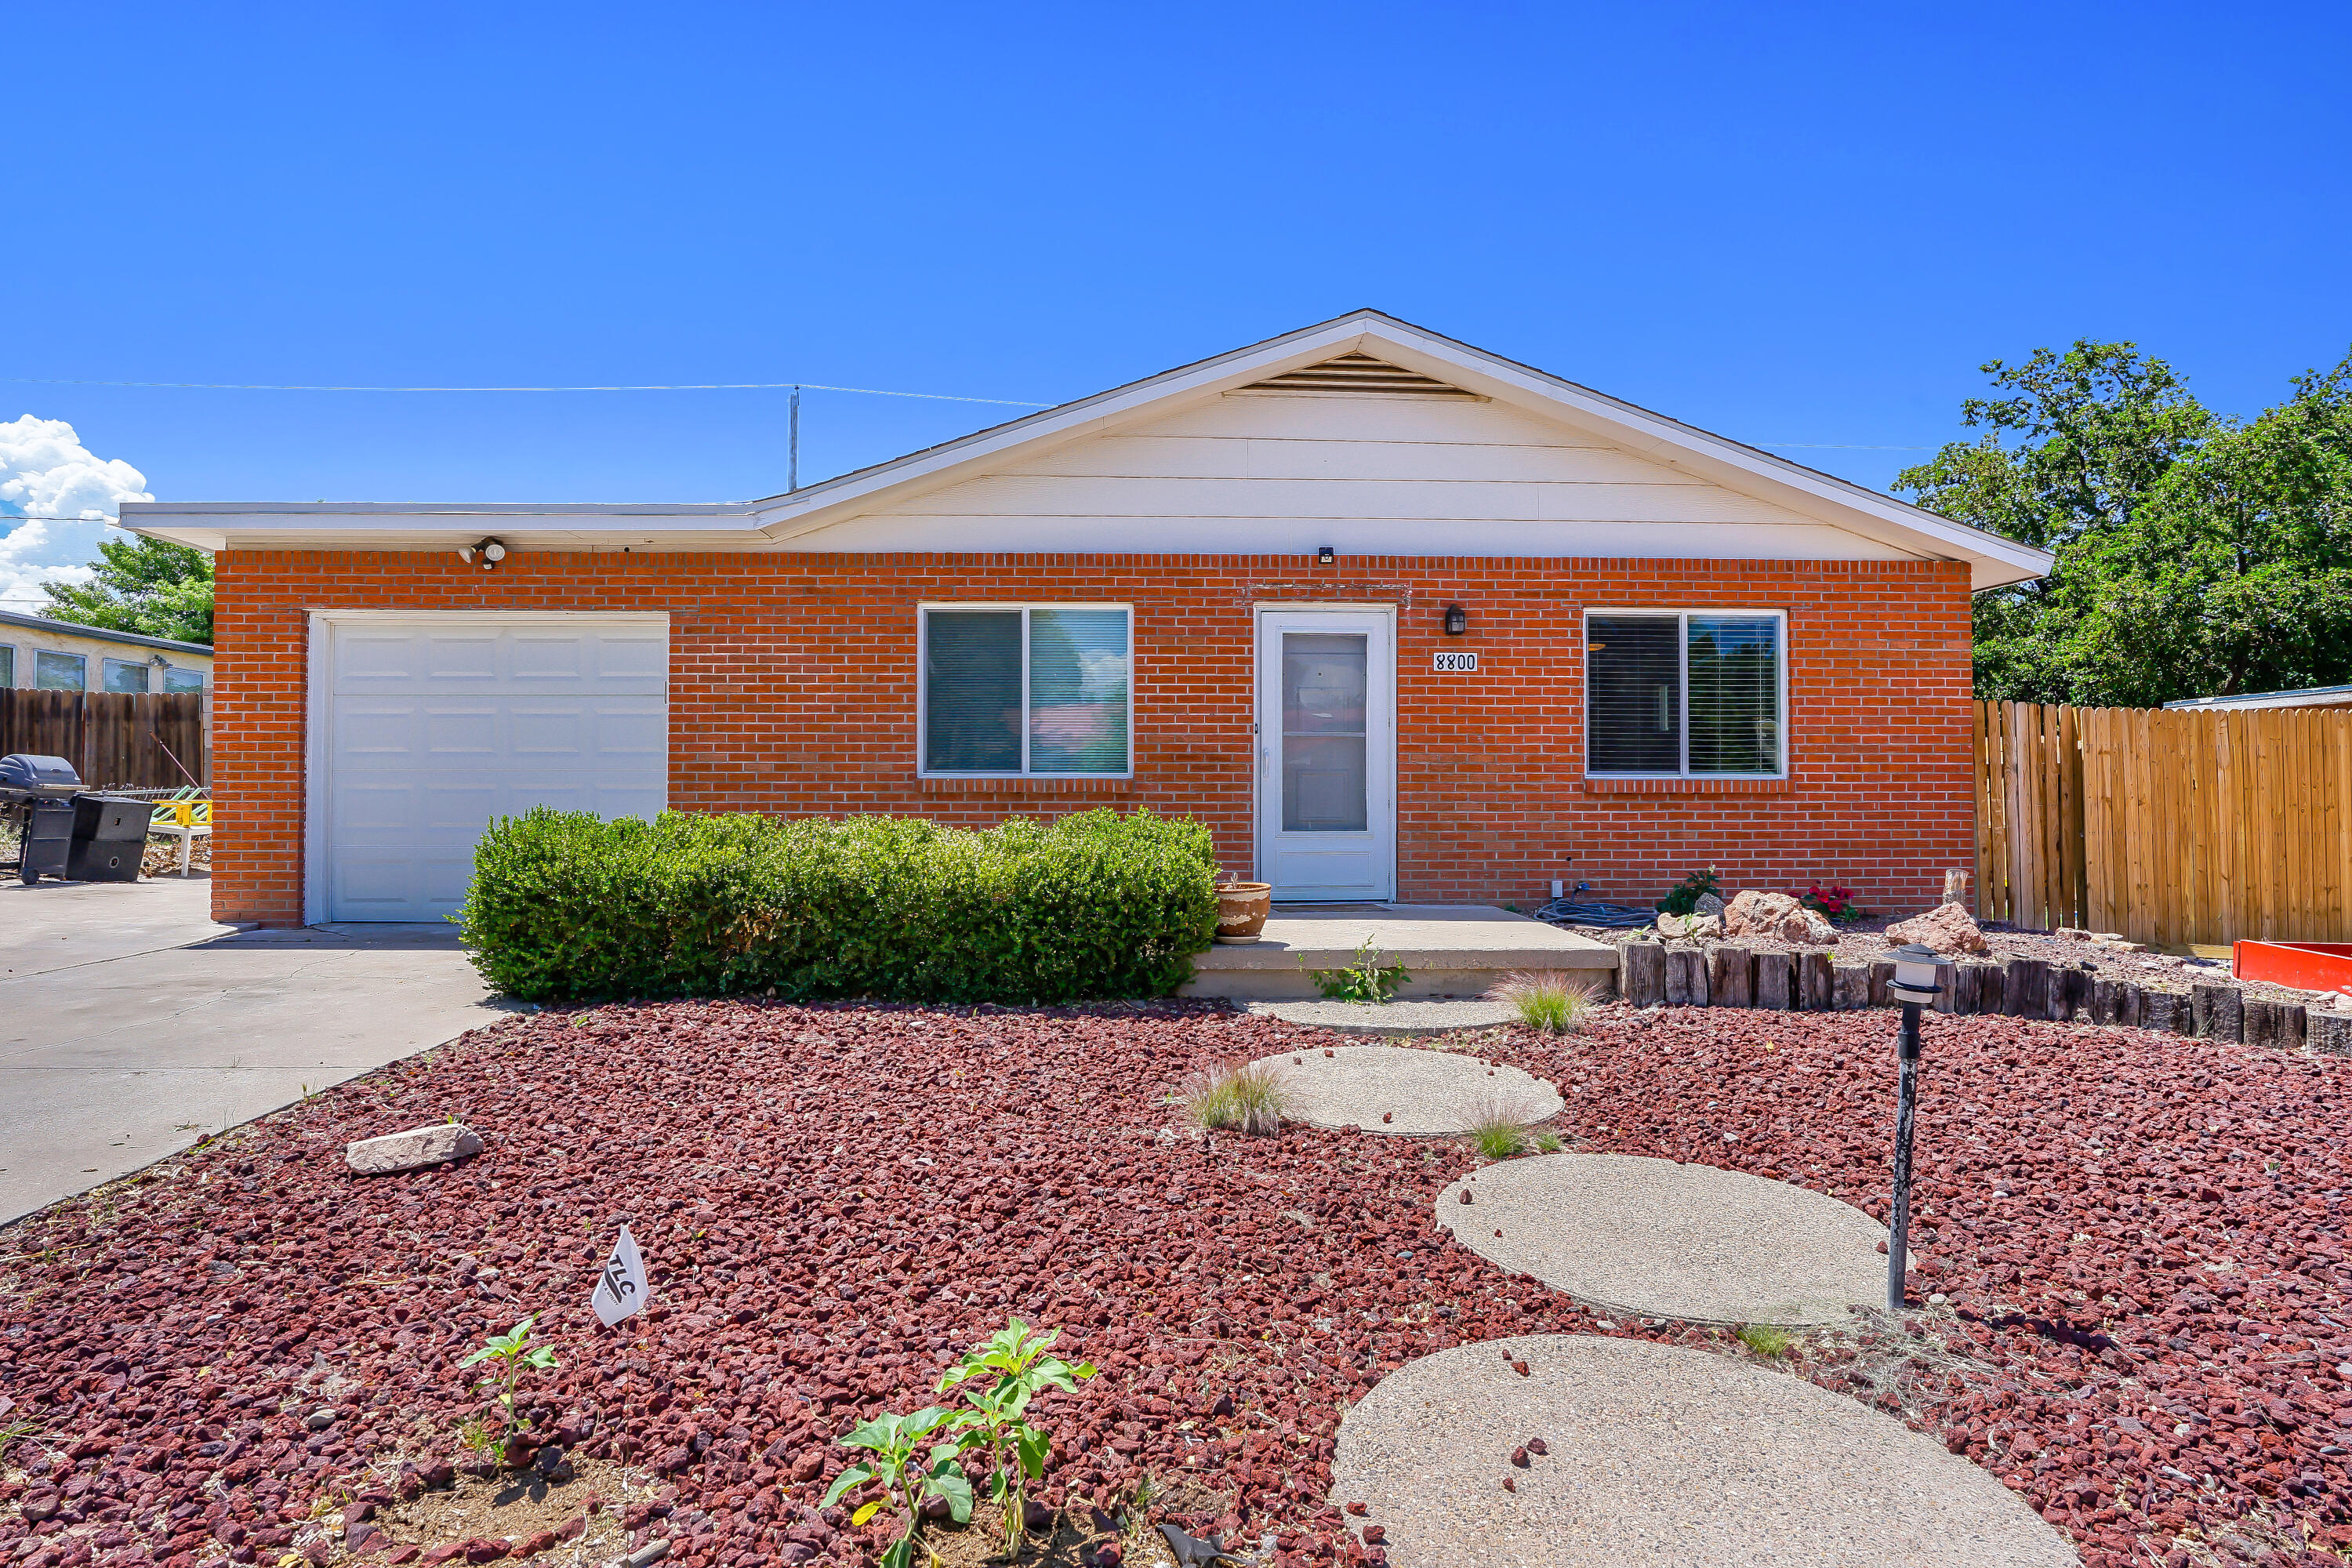 Come check out this cozy gem in the NE Heights. With a spacious, open floor plan. Lots of natural light throughout. Enjoy time in an enclosed sunroom or out in the pergola.New windows, newer roof and soon to be new stucco make this house move-in ready!